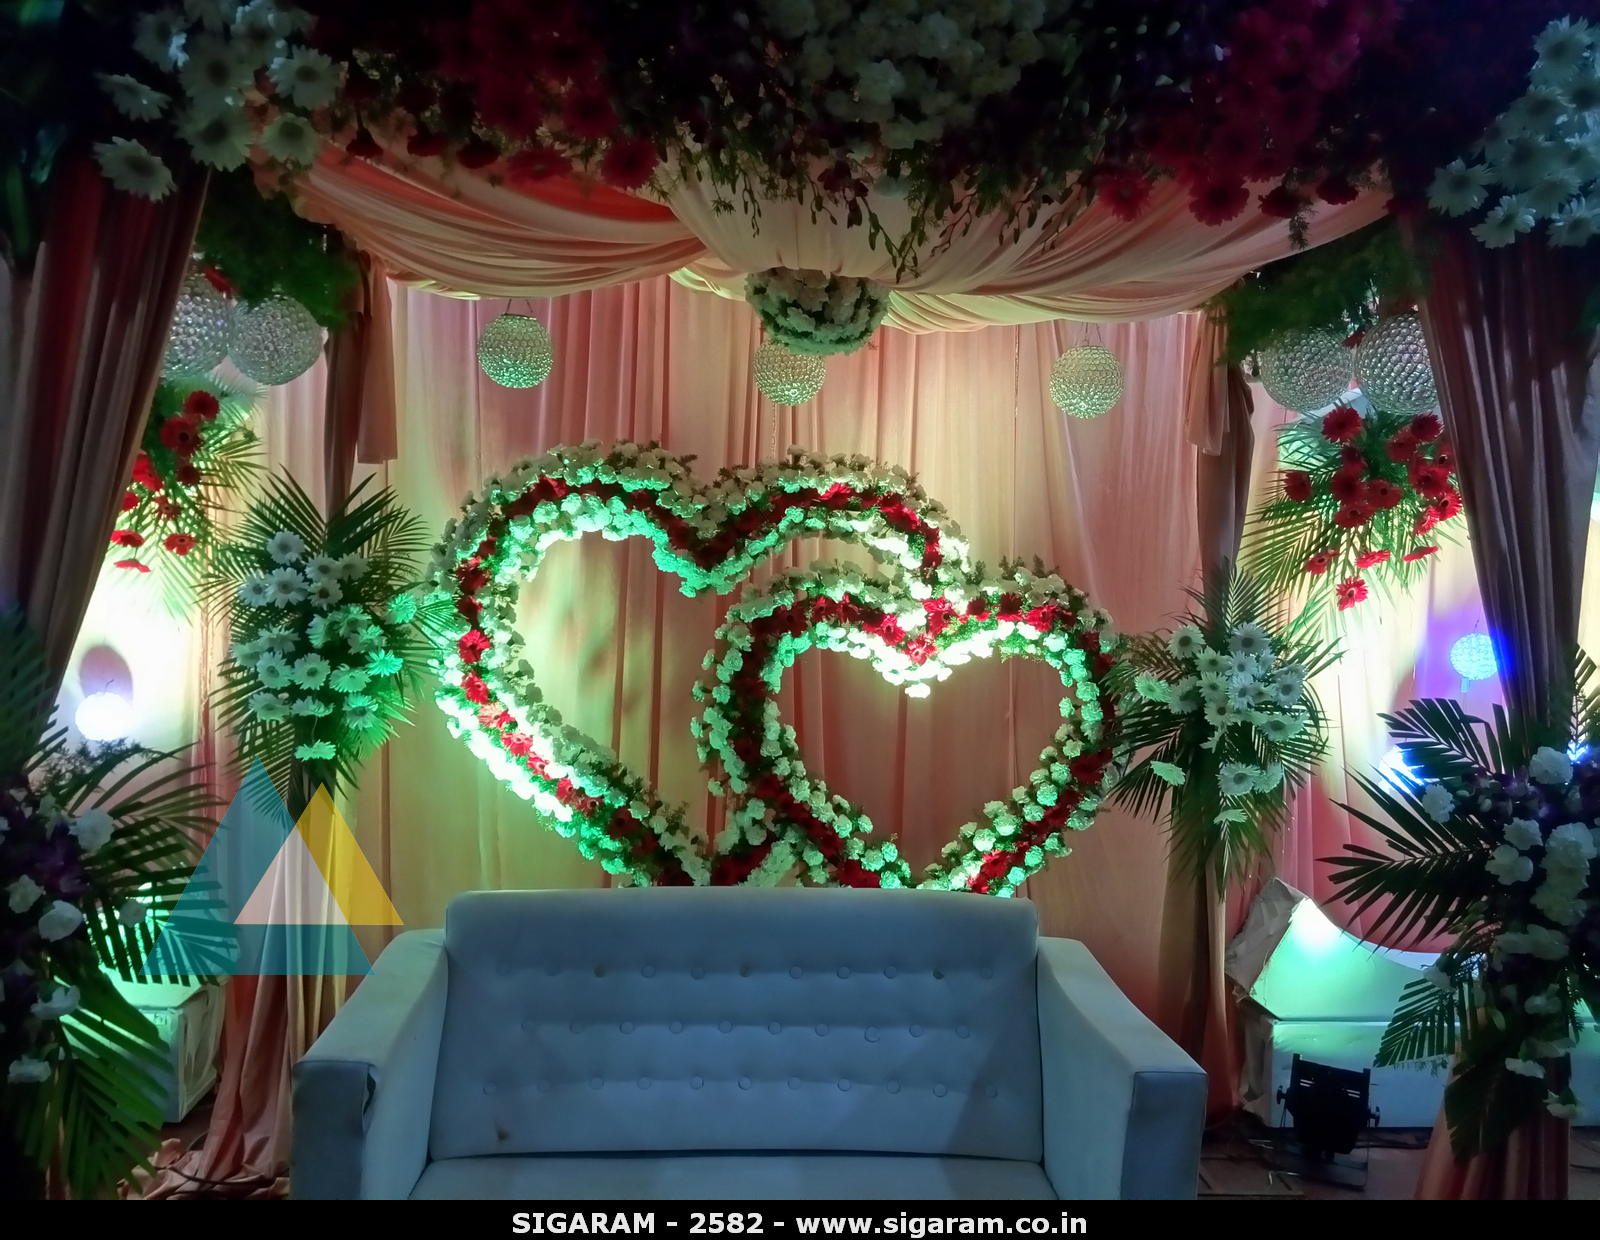 Wedding decoration subalakshmi mahal cuddalore 8 sigaram wedding related events and decorations junglespirit Choice Image